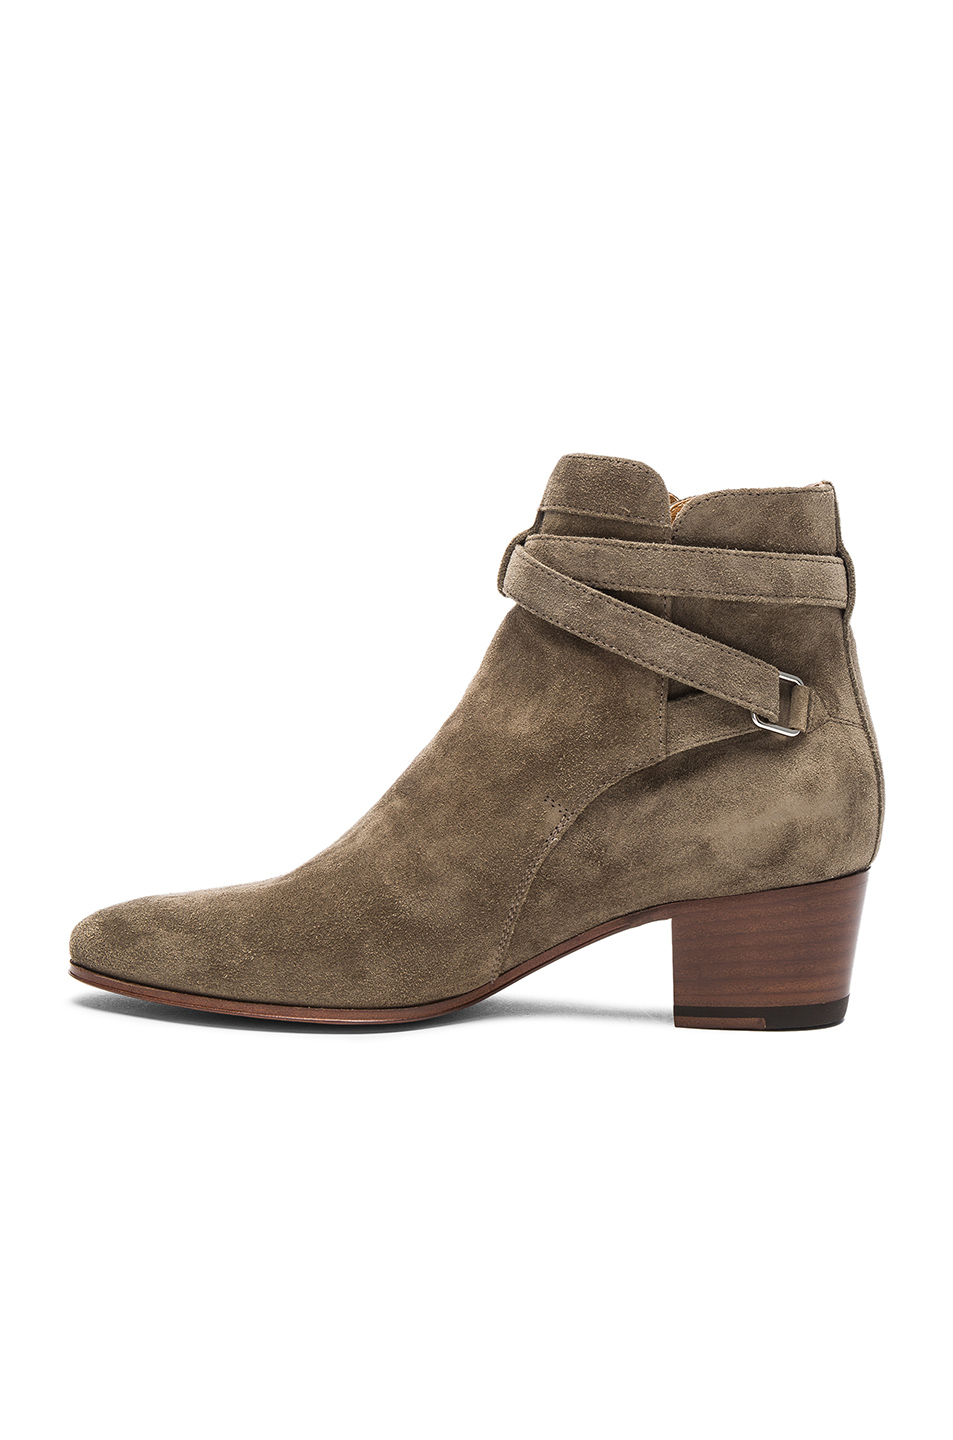 ee0be4b5015 Saint Laurent Suede Blake Buckle Boots in Kaki Washed | FWRD